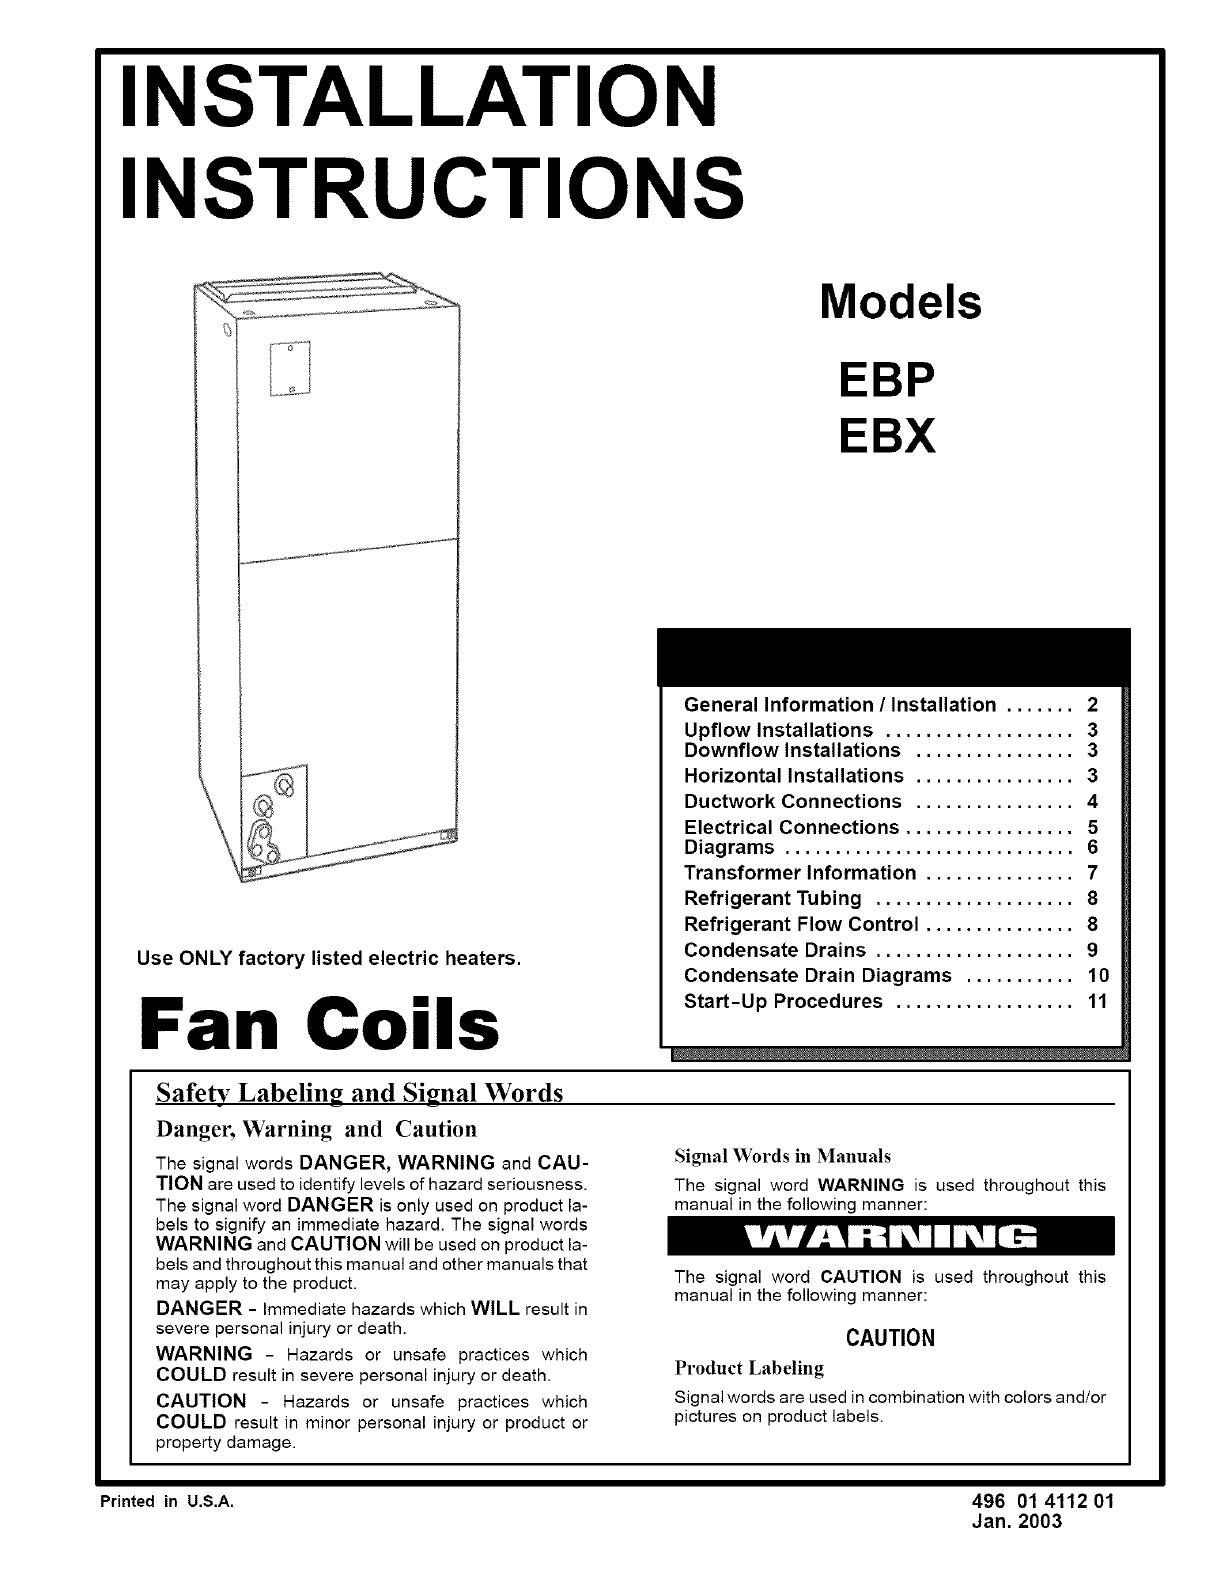 Icp Ebp1800b1 User Manual Fan Coil Manuals And Guides L0502489 Keeprite Refrigeration Units Wiring Diagram